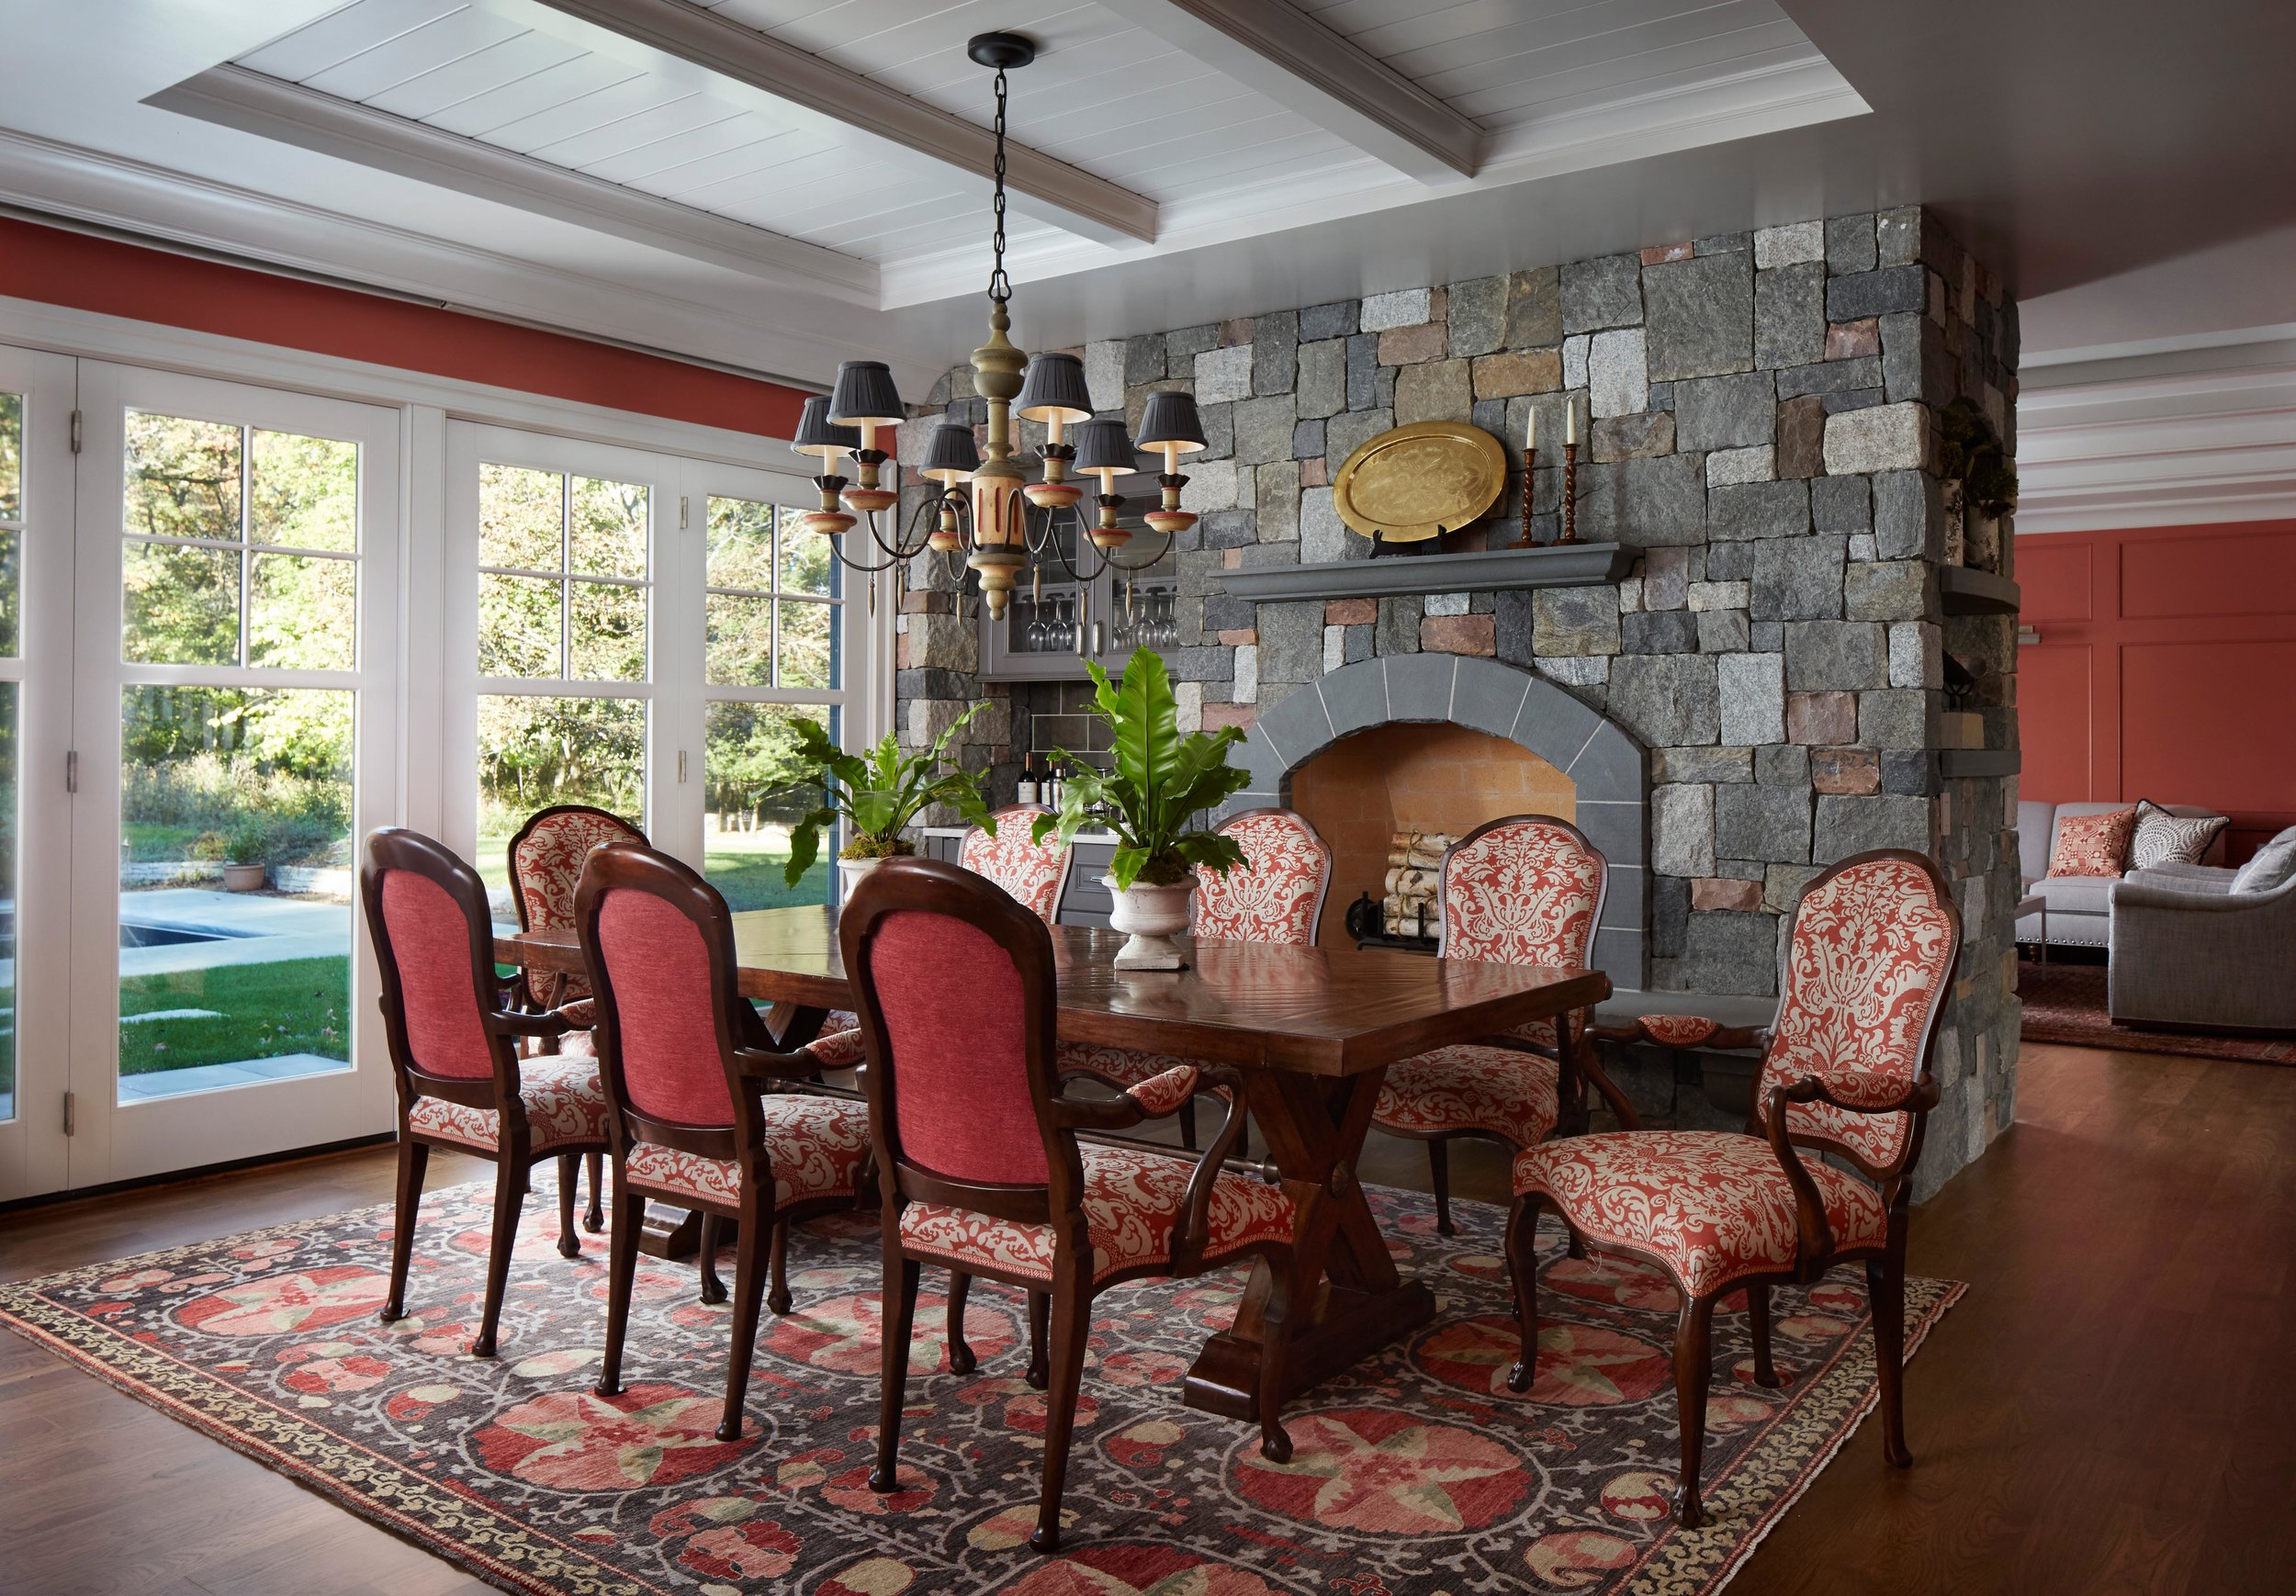 Coral walls and accents in a classic dining room with fireplace. Come see more interior design inspiration from Elizabeth Drake. Photo by Werner Straube. #interiordesign #classicdesign #traditionaldecor #housetour #elizabethdrake